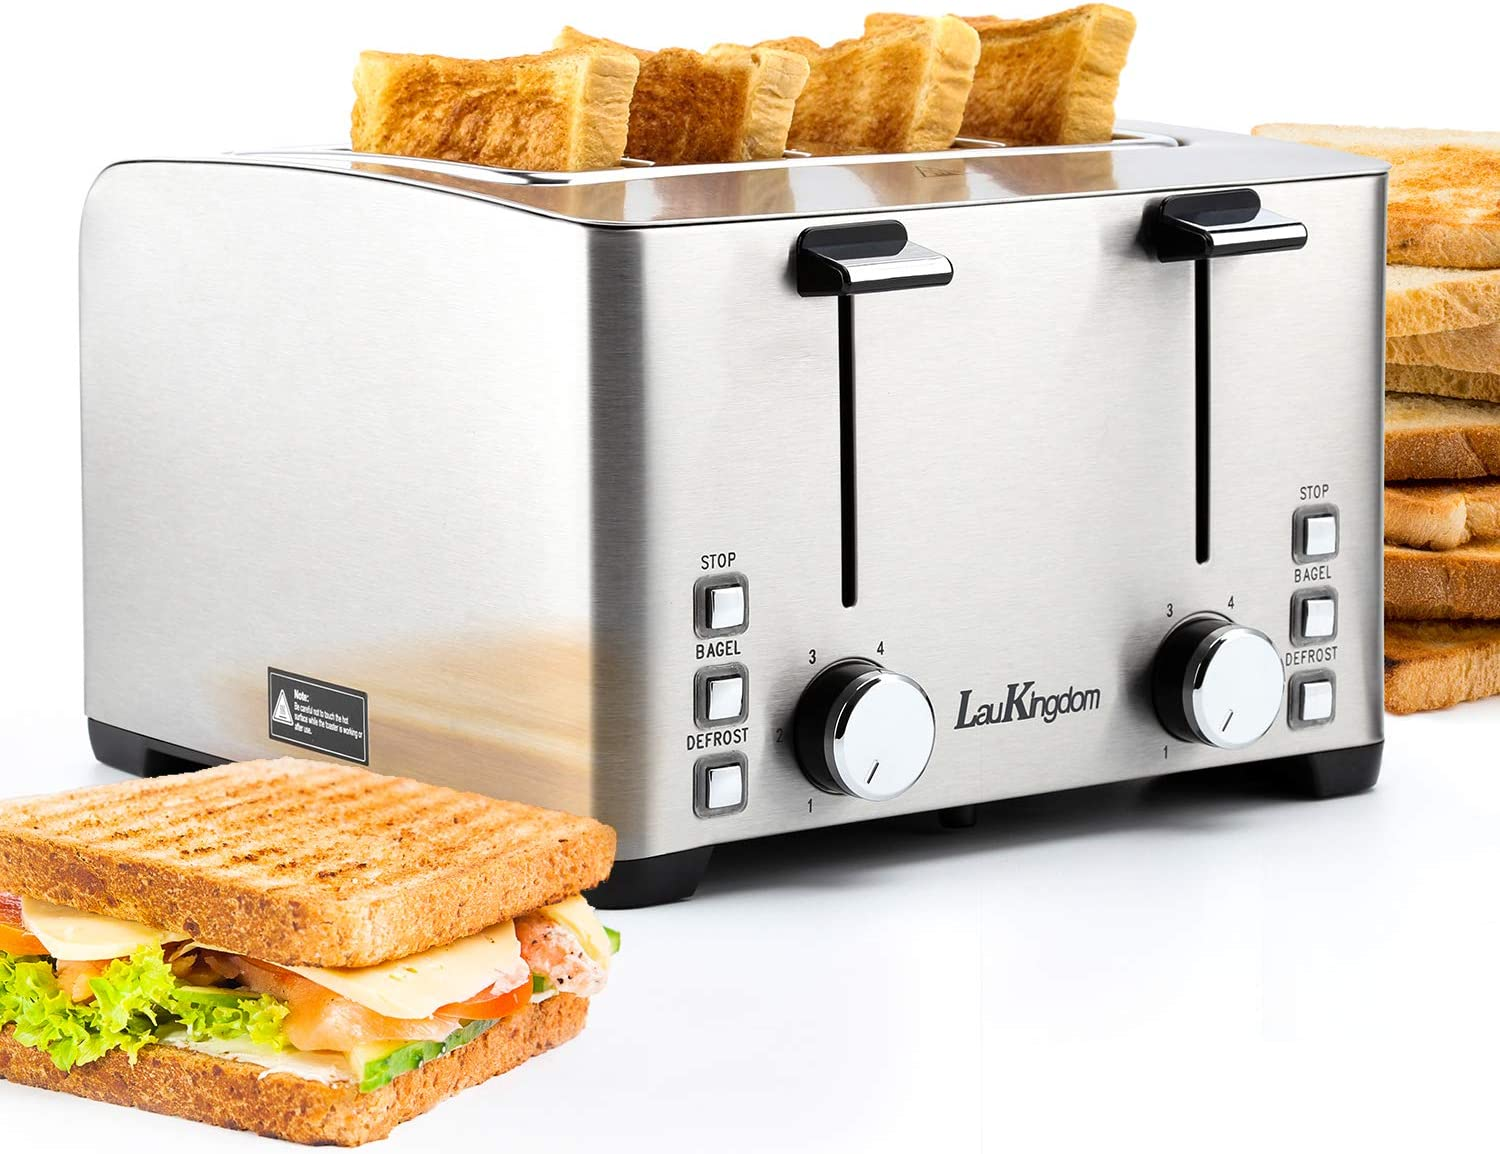 Toaster 4 Slice, LauKingdom Stainless Steel Toasters with Bagel/Defrost/Stop Function, Dual Independent Control Panels, 4 Wide Slots Toaster, 6 Bread Shade Settings, 1500W Silver